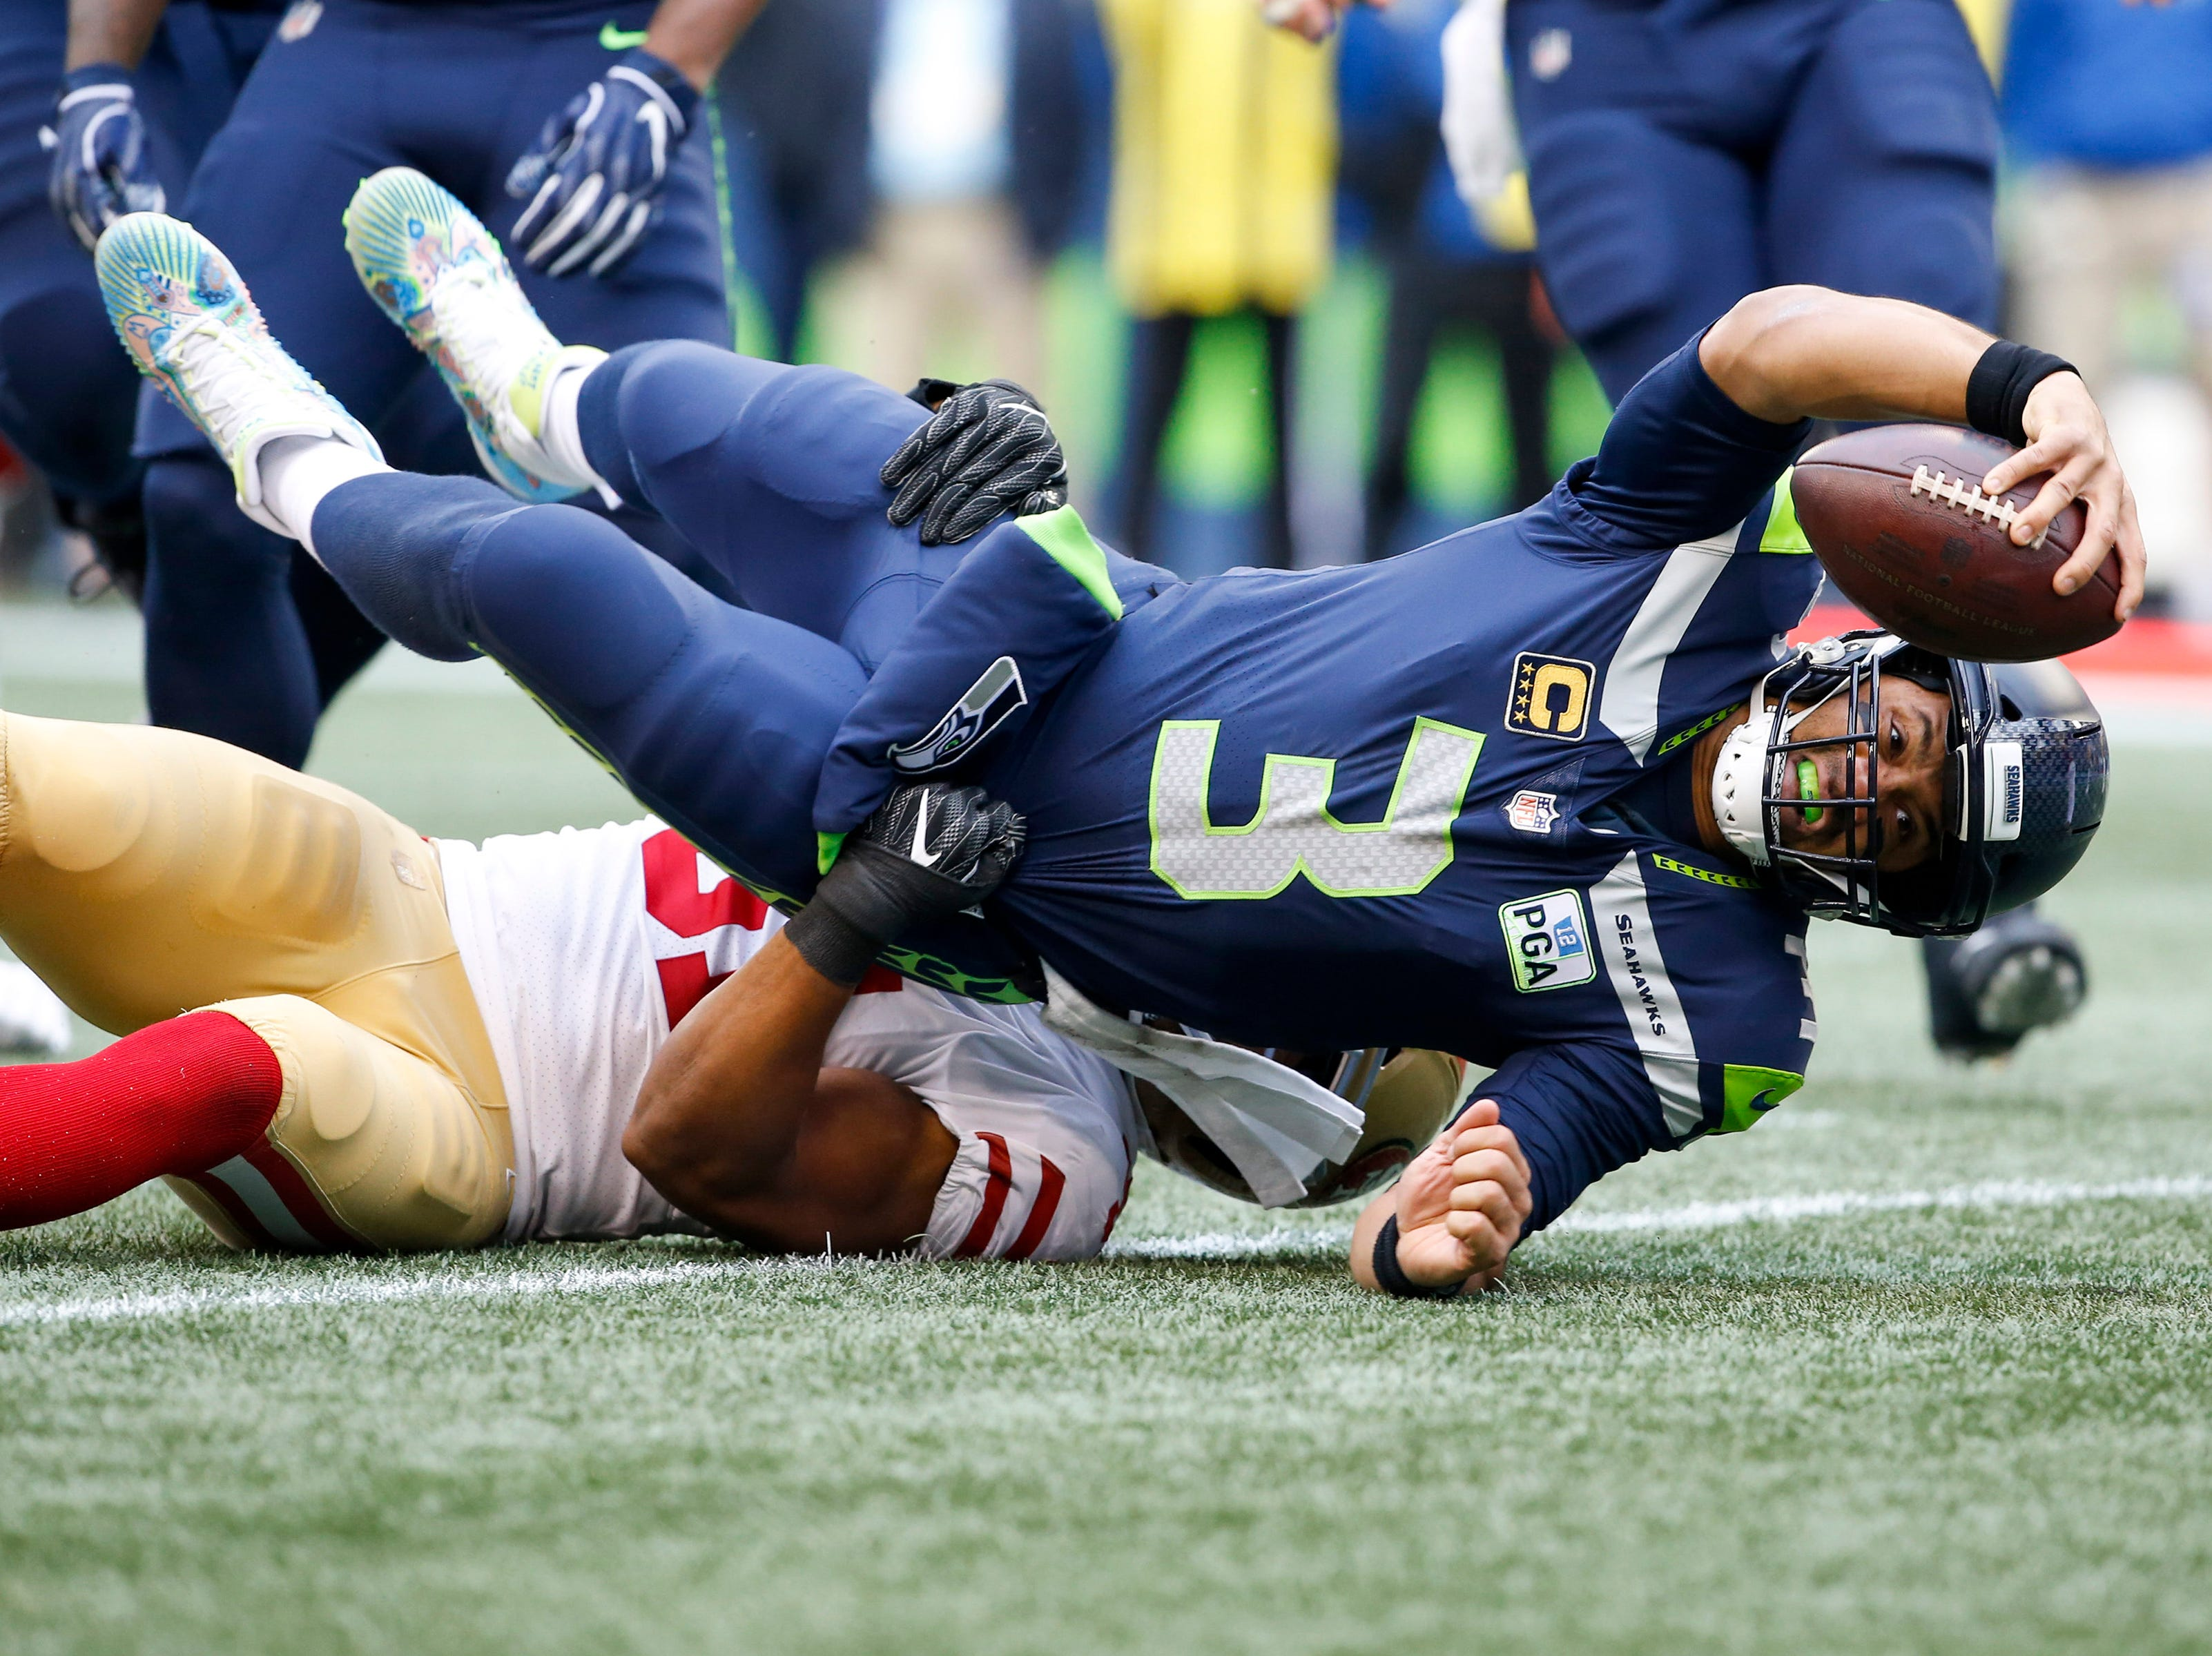 Seahawks quarterback Russell Wilson stretches out for extra yardage on a rushing attempt against the 49ers.